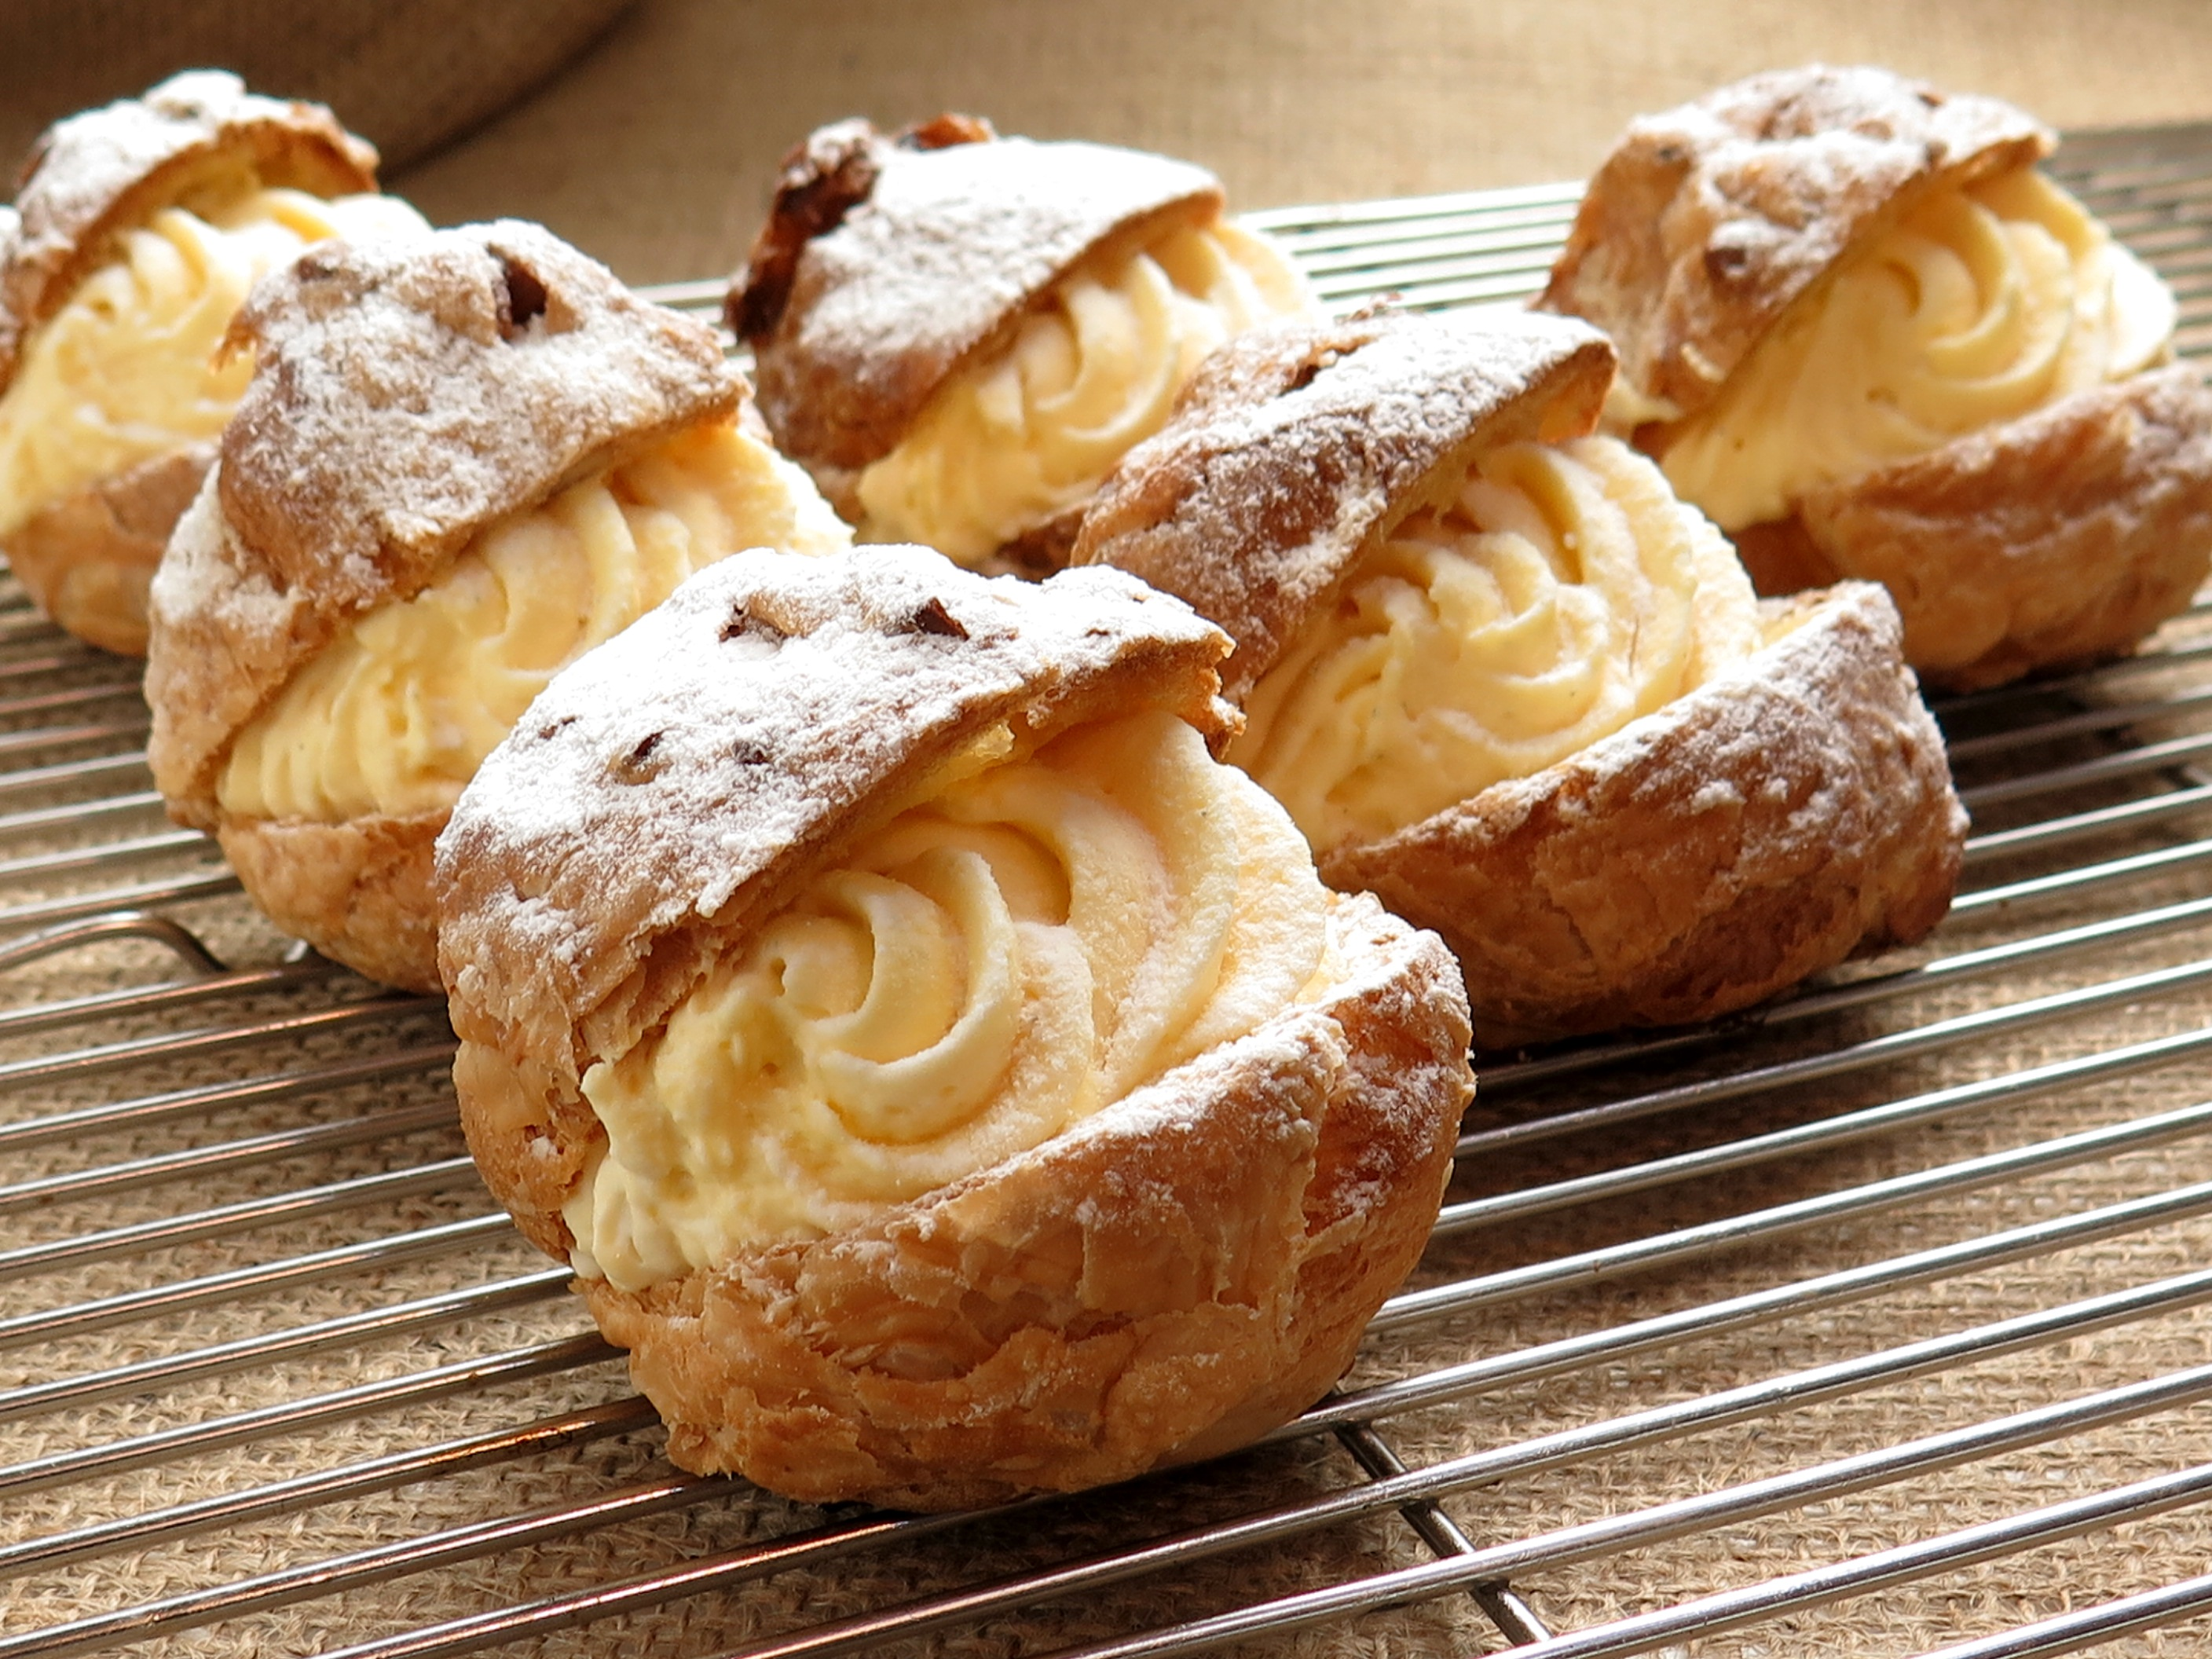 cream-puffs-delicious-france-confectionery-food-52539.jpeg (2816×2112)